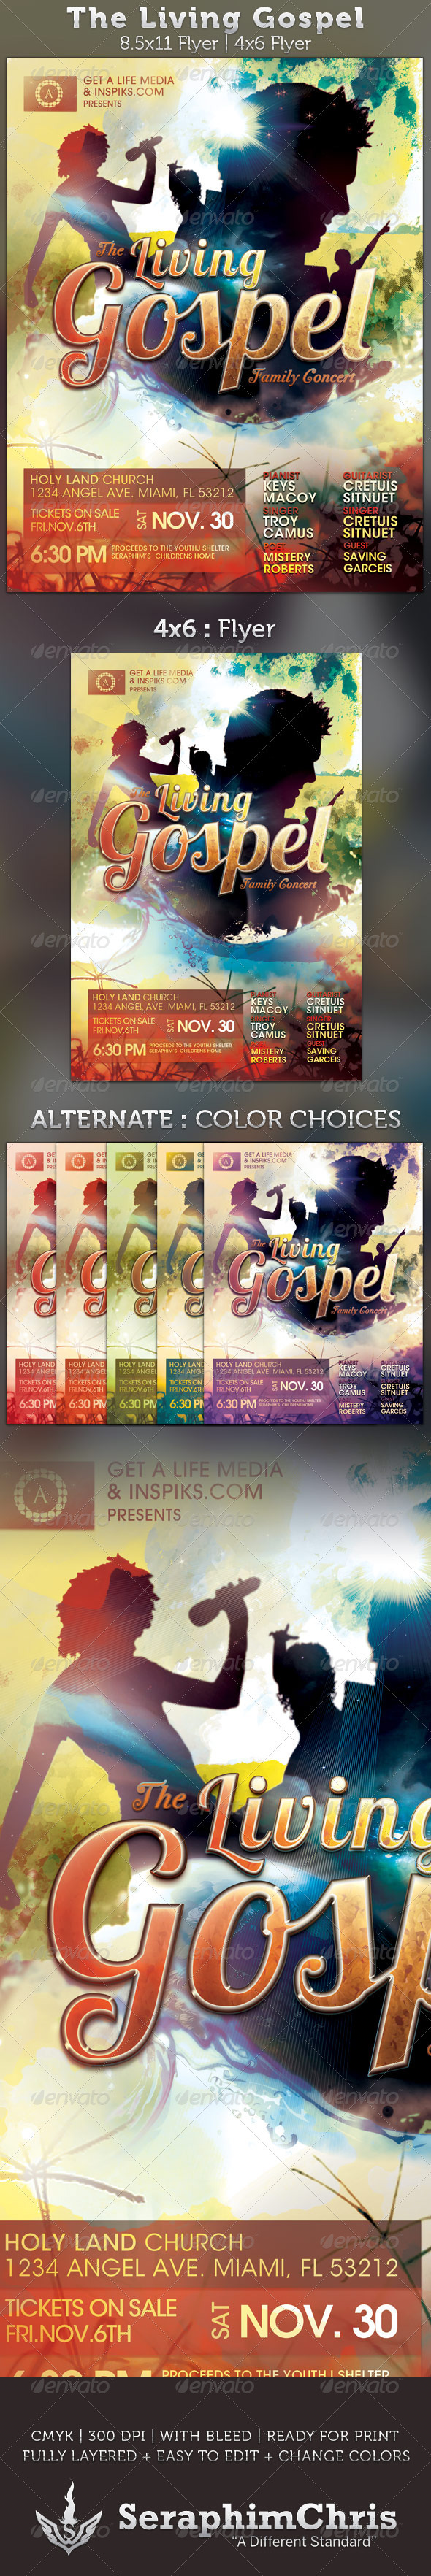 GraphicRiver The Living Gospel Church Concert Flyer Template 2761866